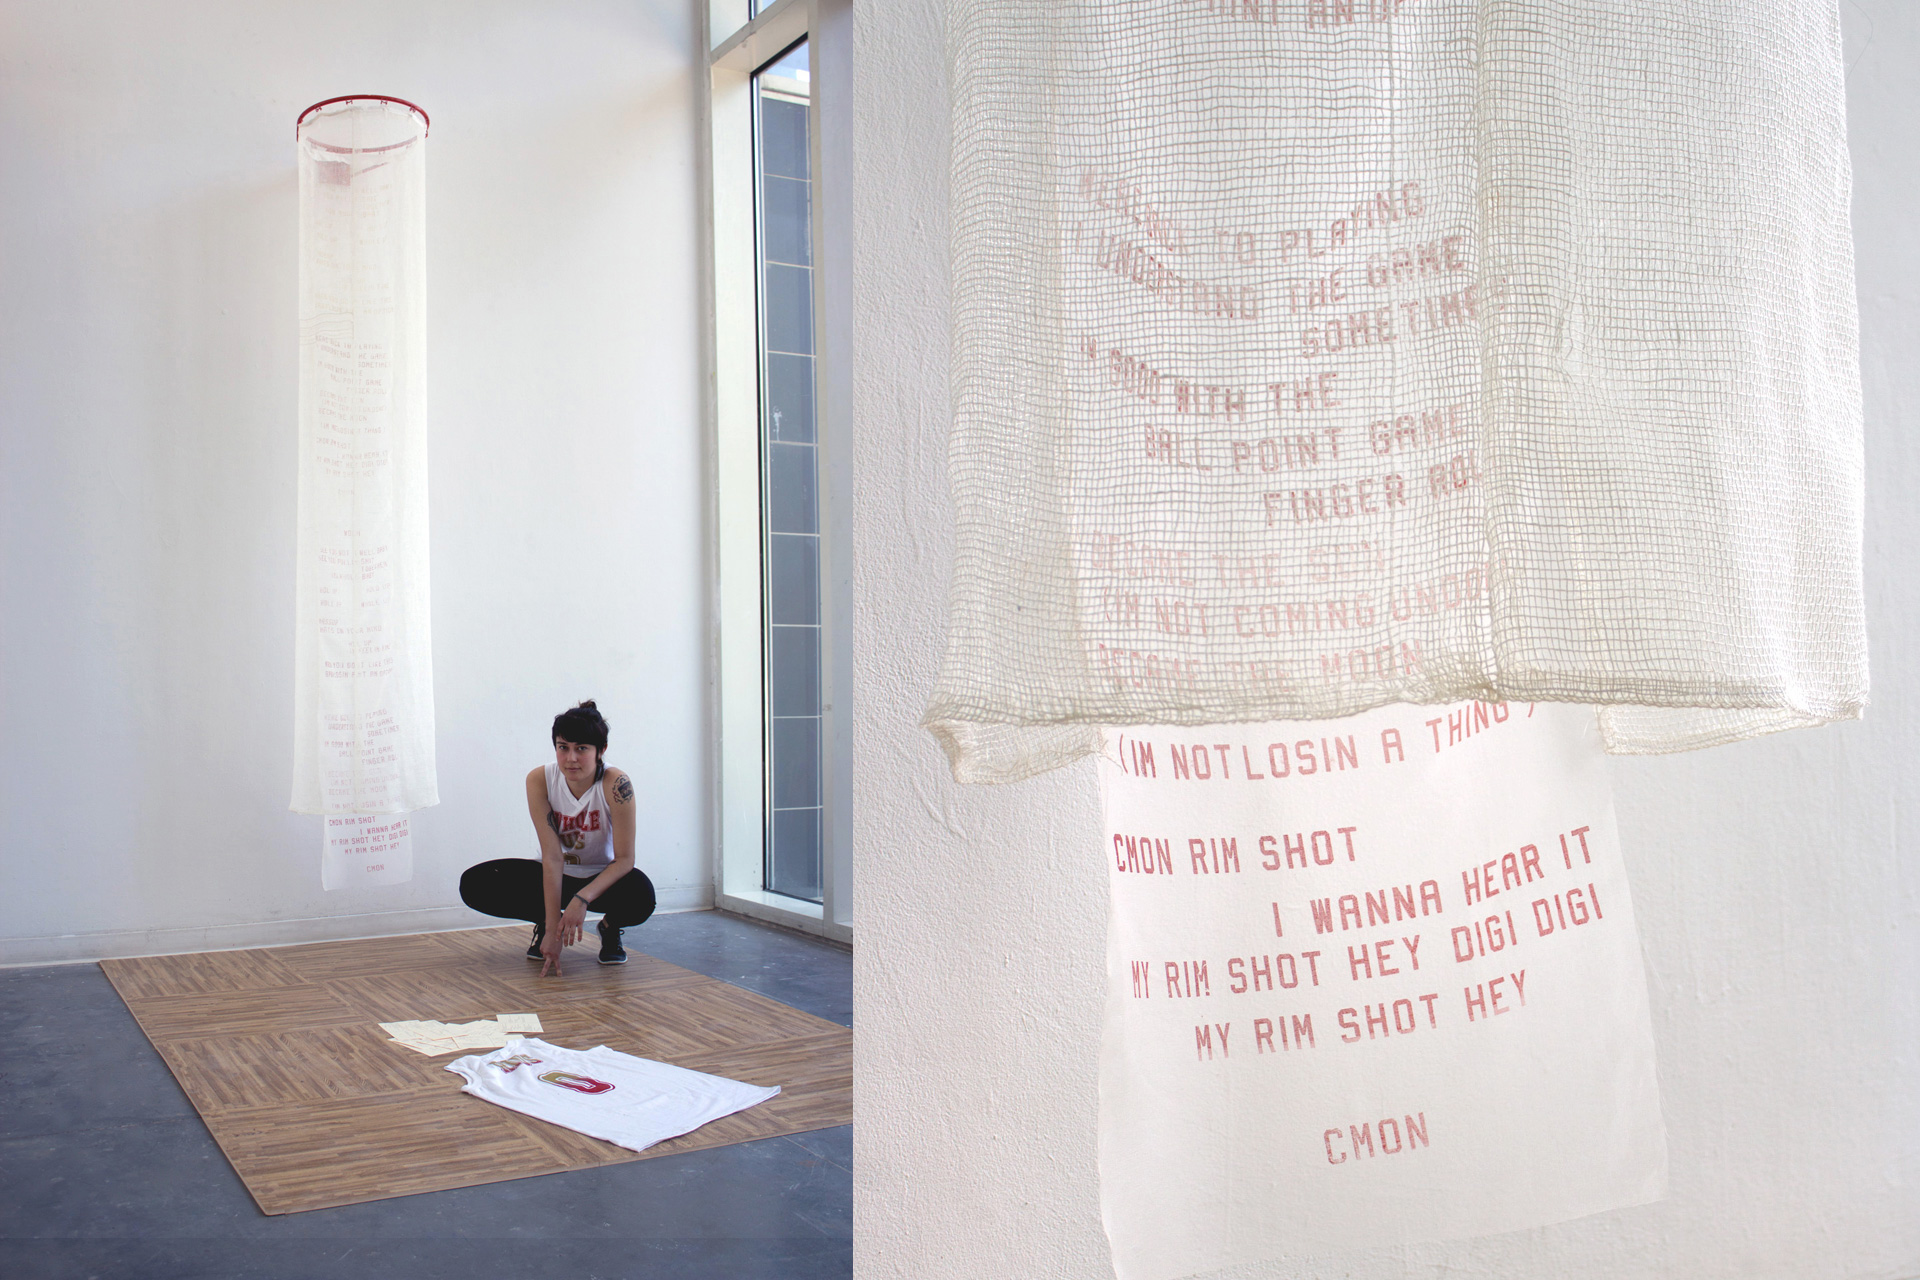 """Michaela Amato Fabric Design II , 2015  Virginia Commonwealth University   Appropriation /  Use screenprinting techniques to create a new visual language based on existing personal, cultural, political or decorative, etc. imagery.  Michaela performed the one-on-one basketball game """"horse,"""" substituting the word """"whole."""" Her printed text used the structural and stylistic form of hip-hop to address women's varied roles in relationships."""